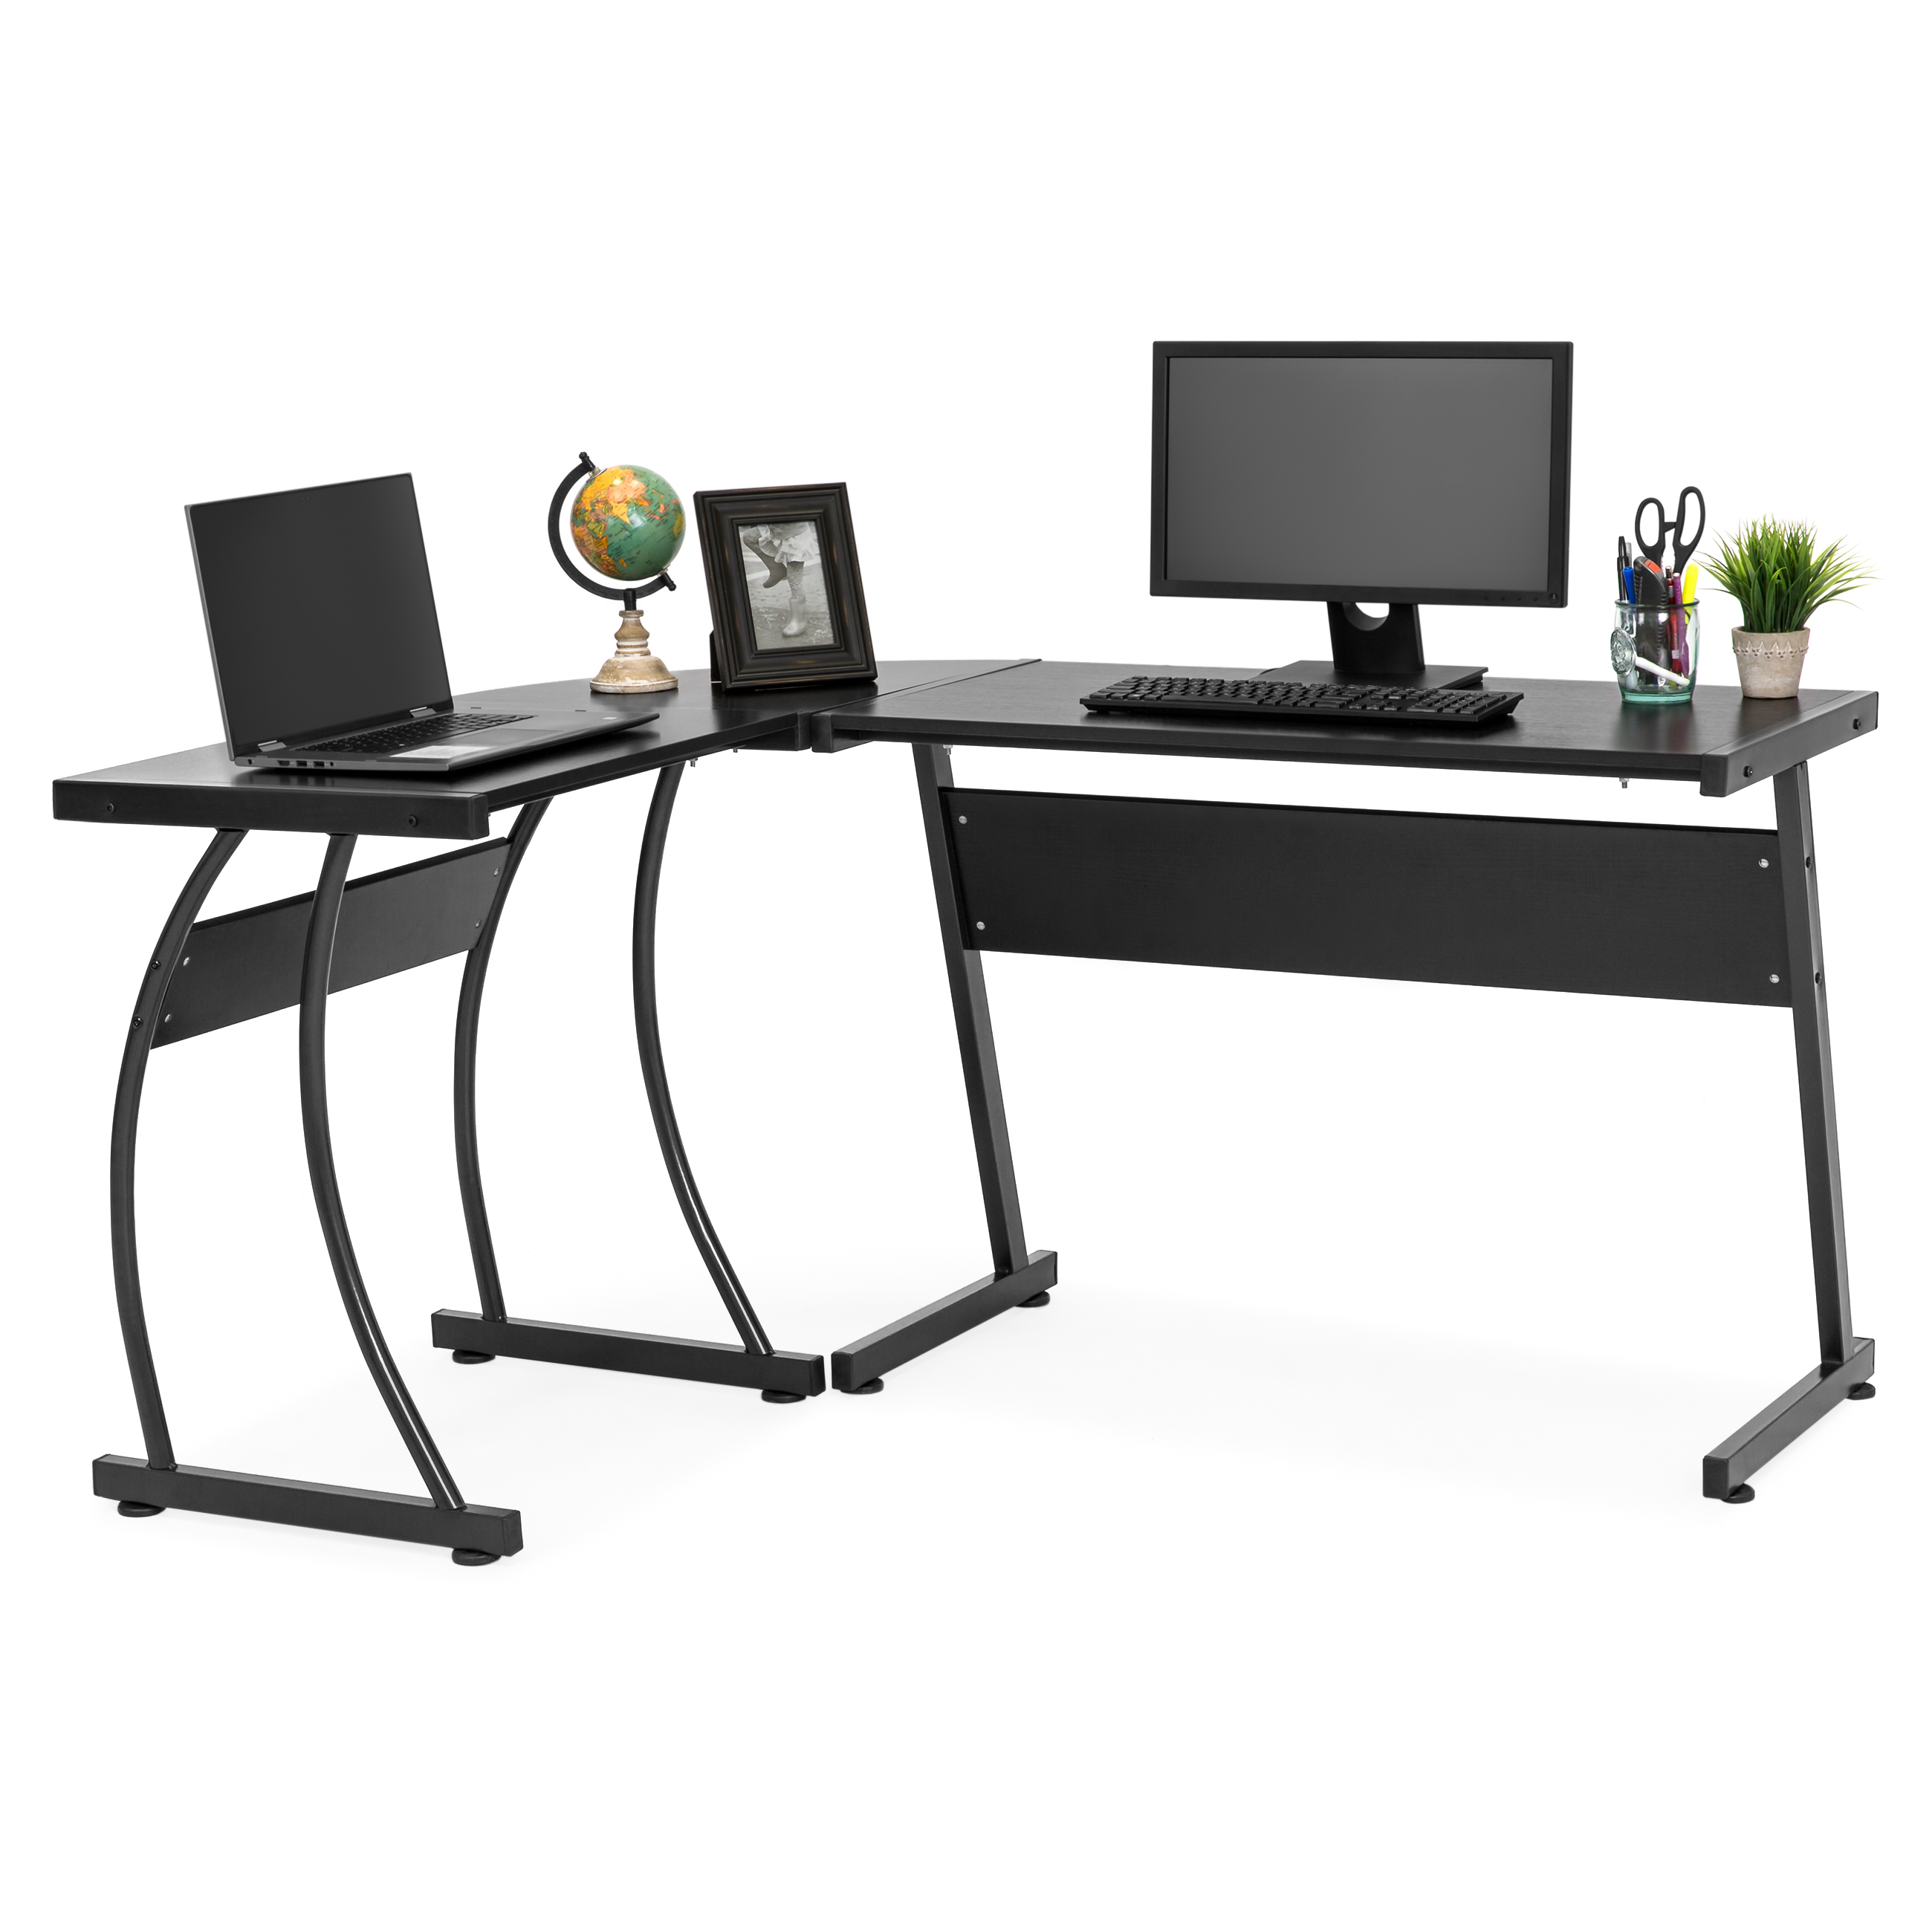 Best Choice Products 43-Piece Home Office L-Shaped Corner Computer Desk  Workstation w/ Metal Frame, Foot Pads - Black - Walmart.com